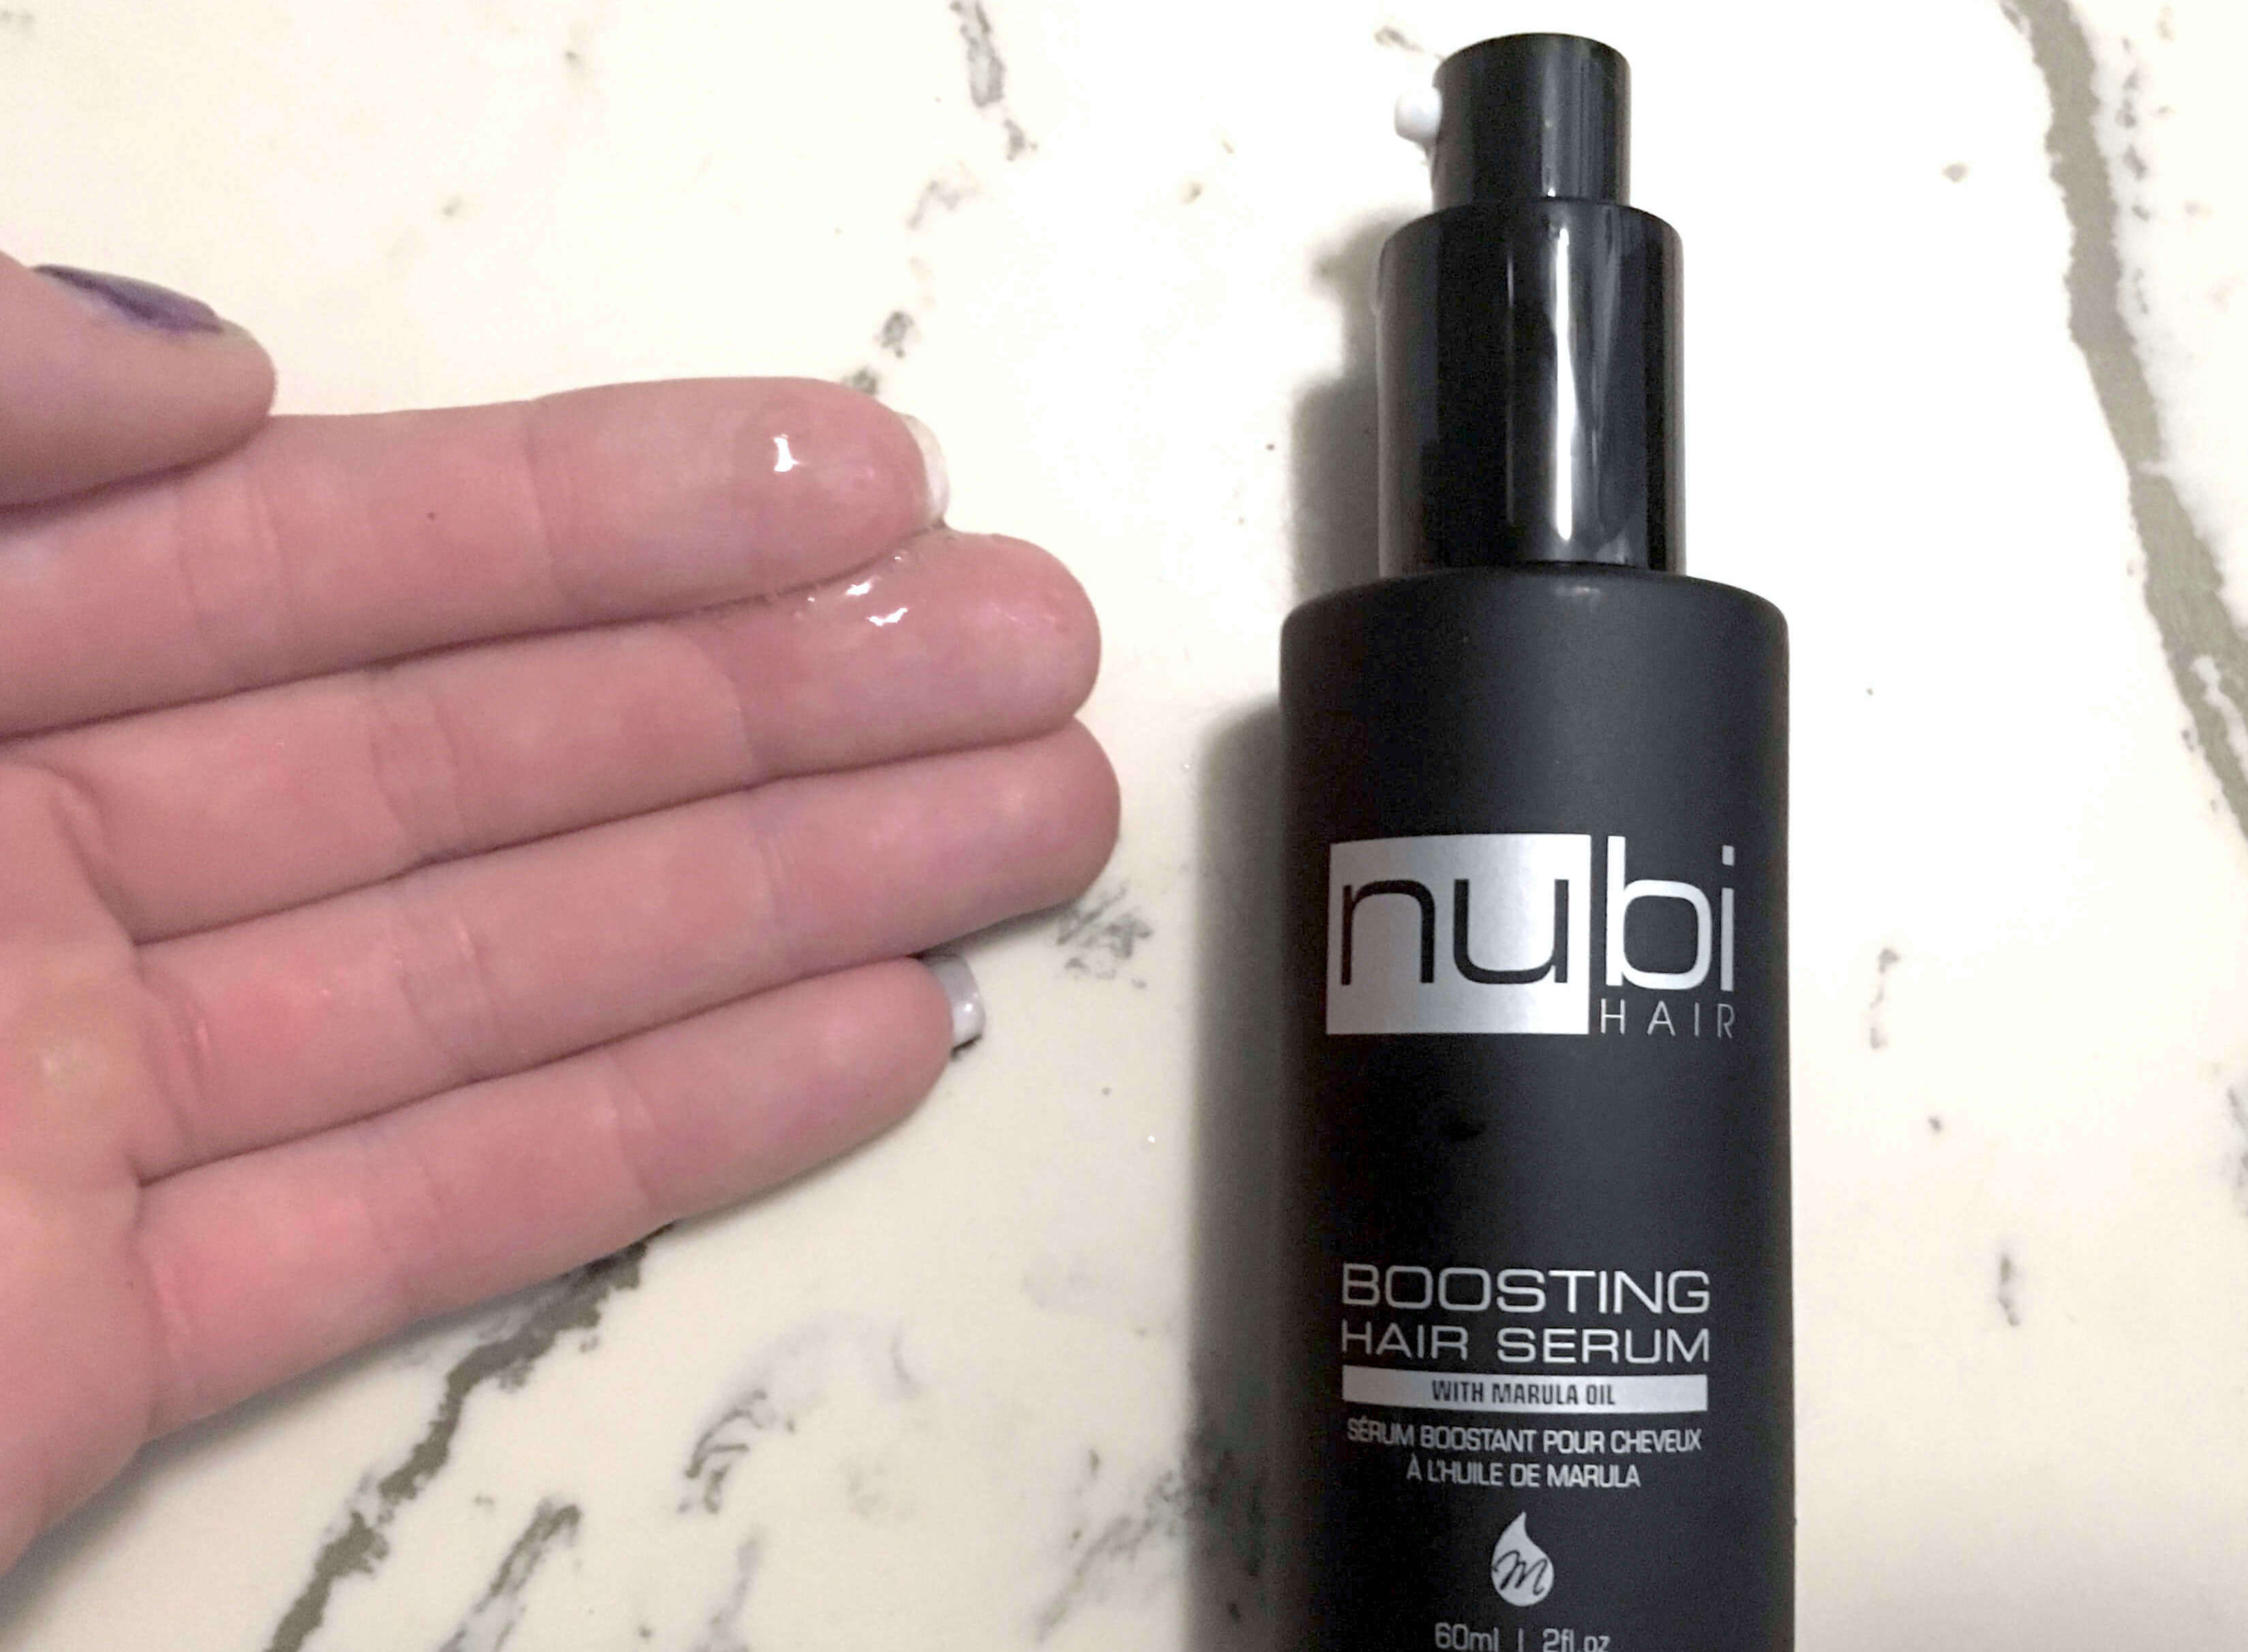 Nubi Boosting Hair Serum with Marula Oil review